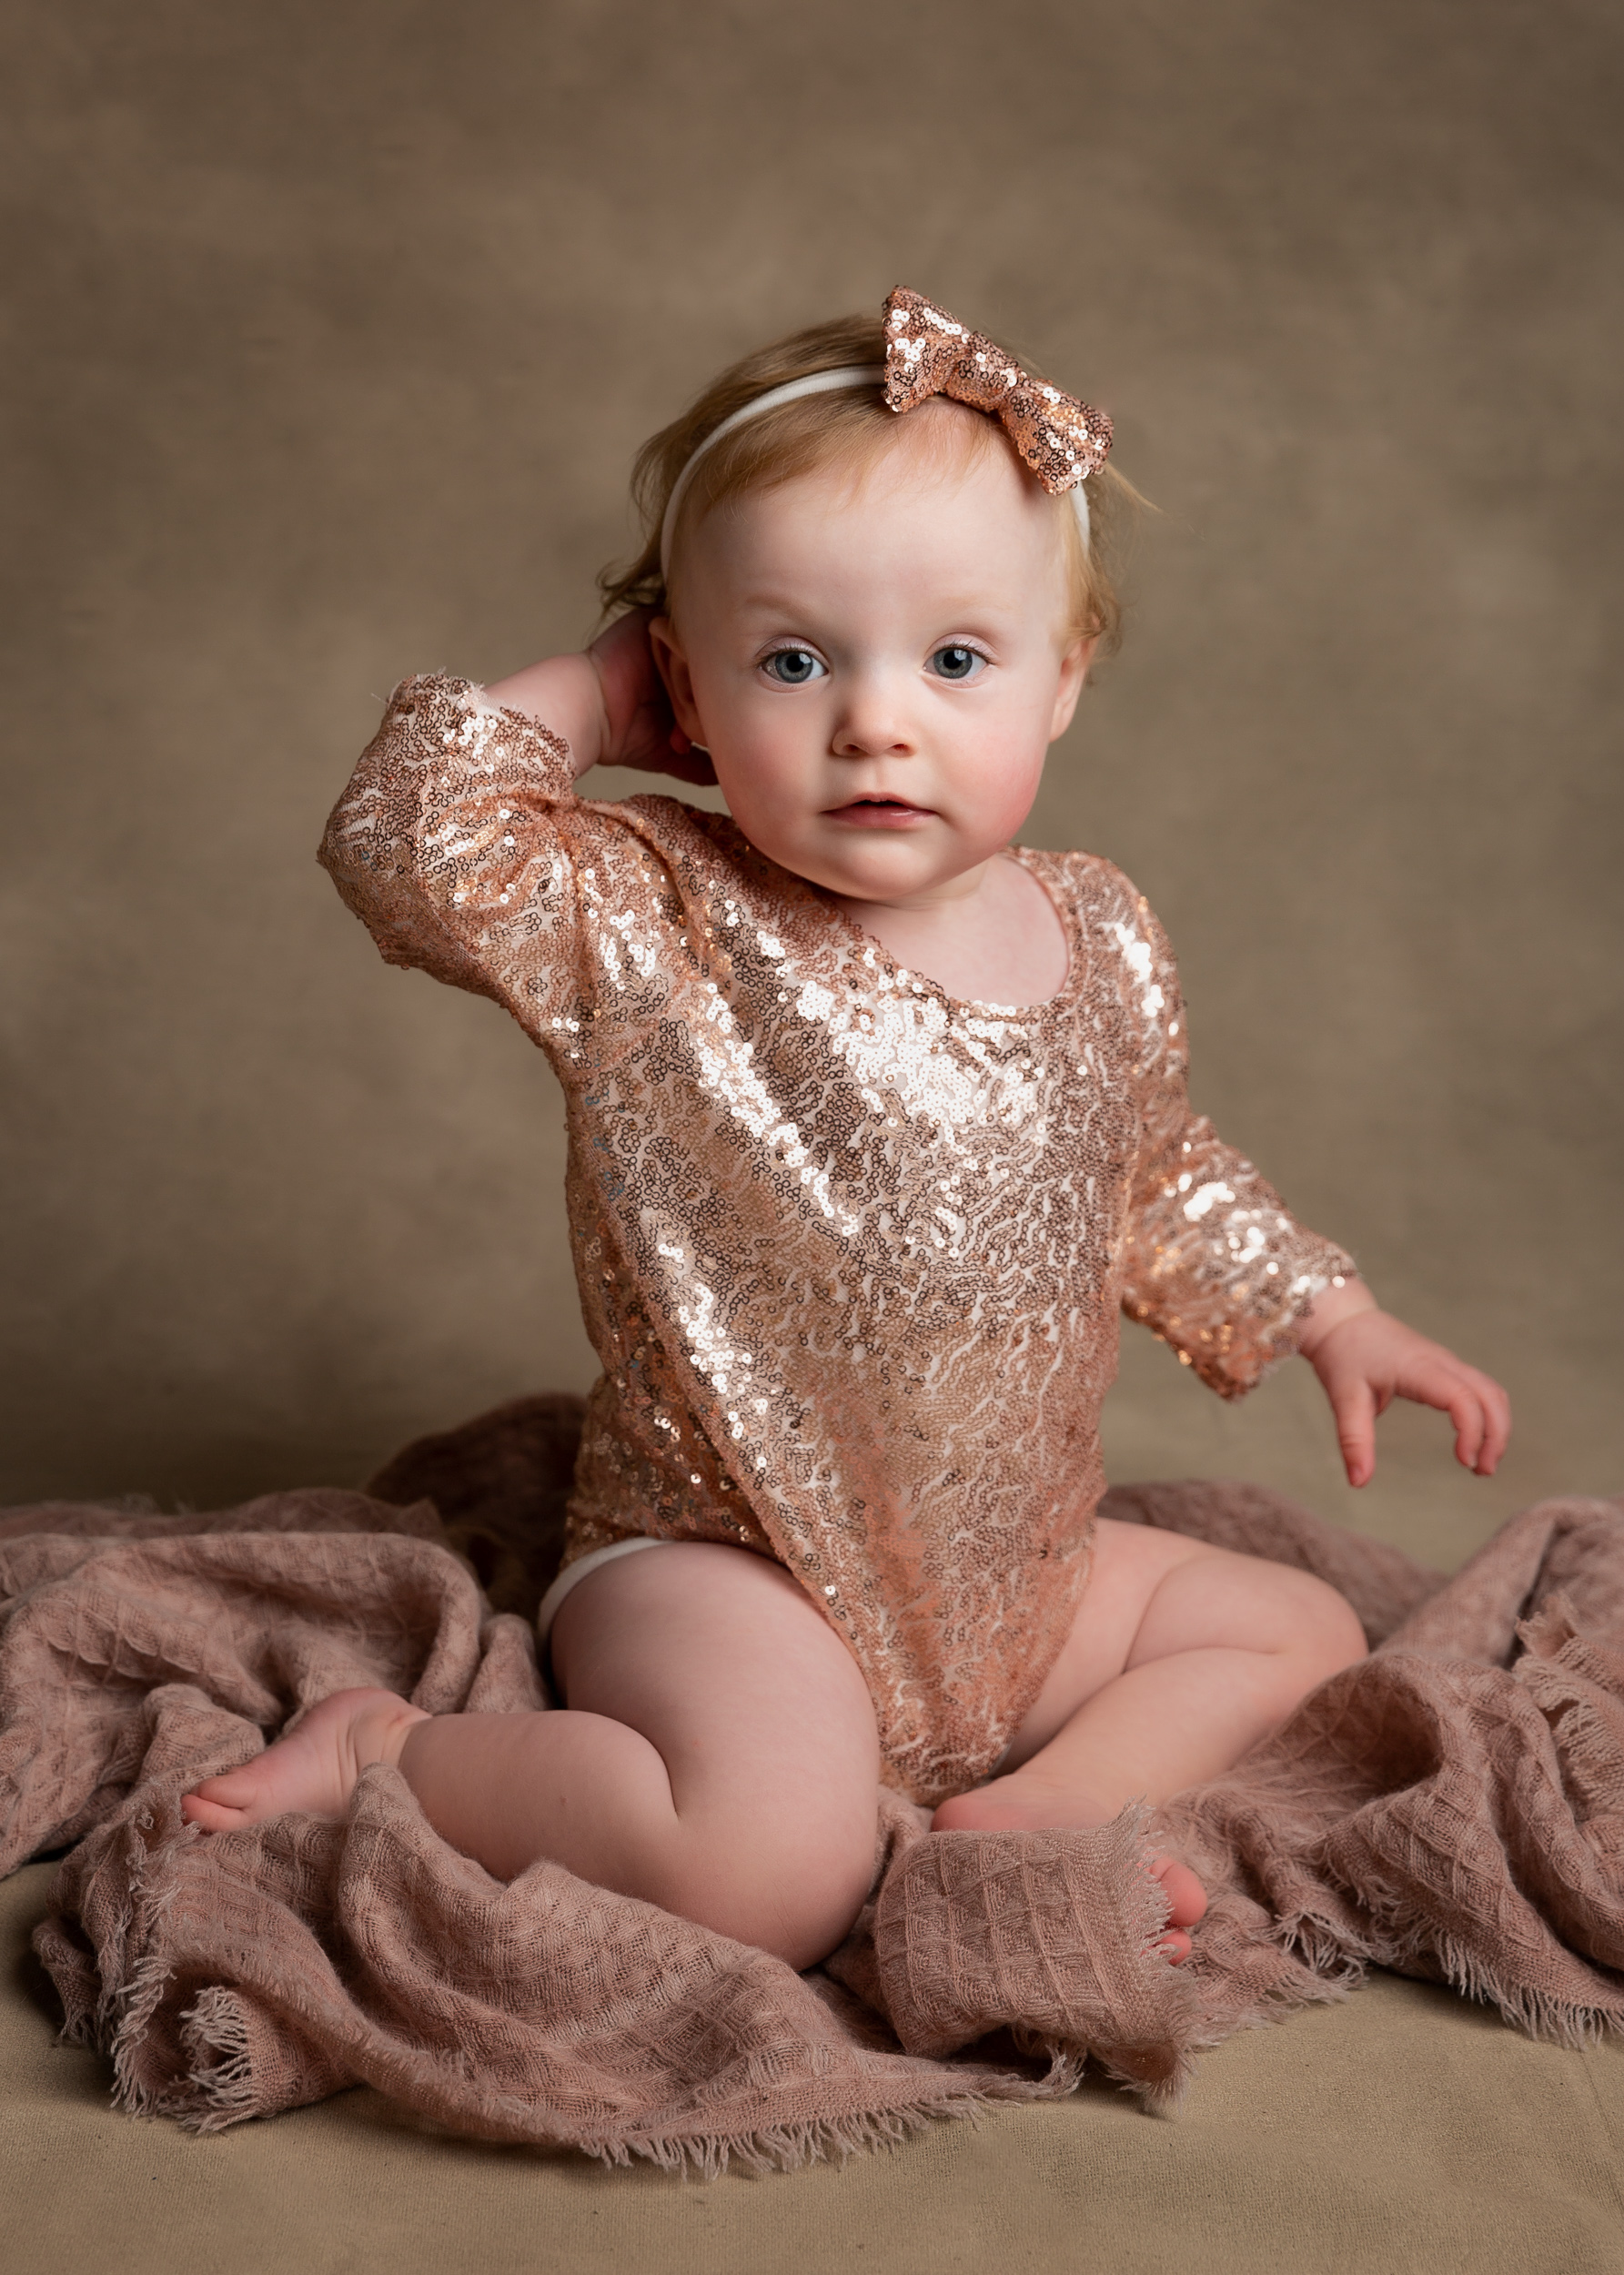 Little girl in a sparkly outfit to celebrate her first birthday with a photo shoot in Cheshire